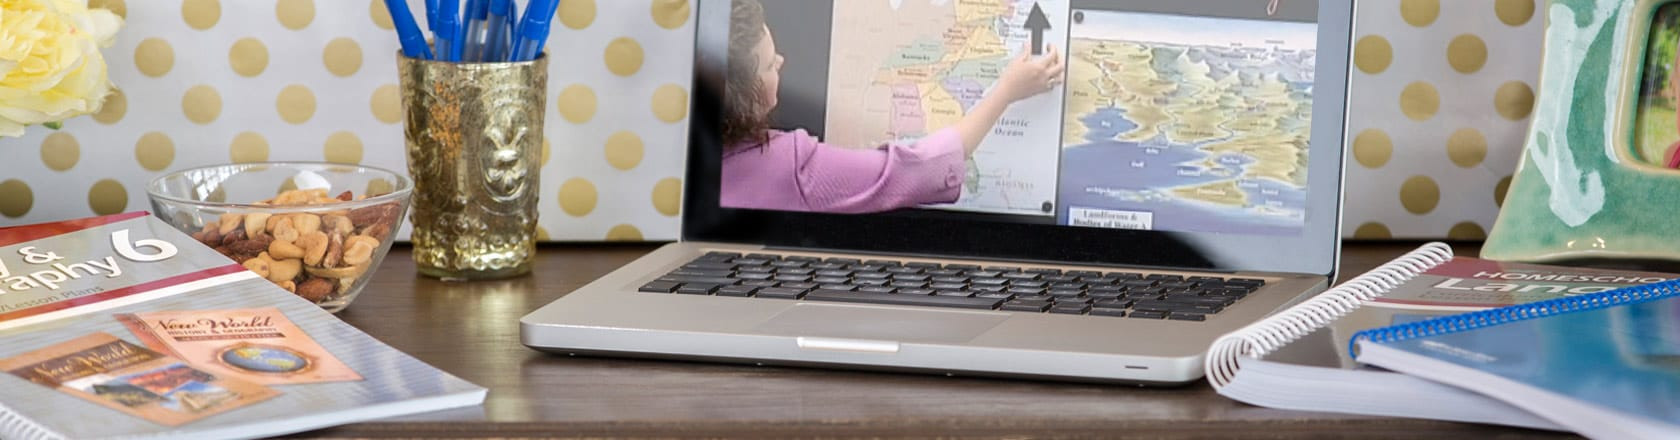 Laptop with female video teacher using map